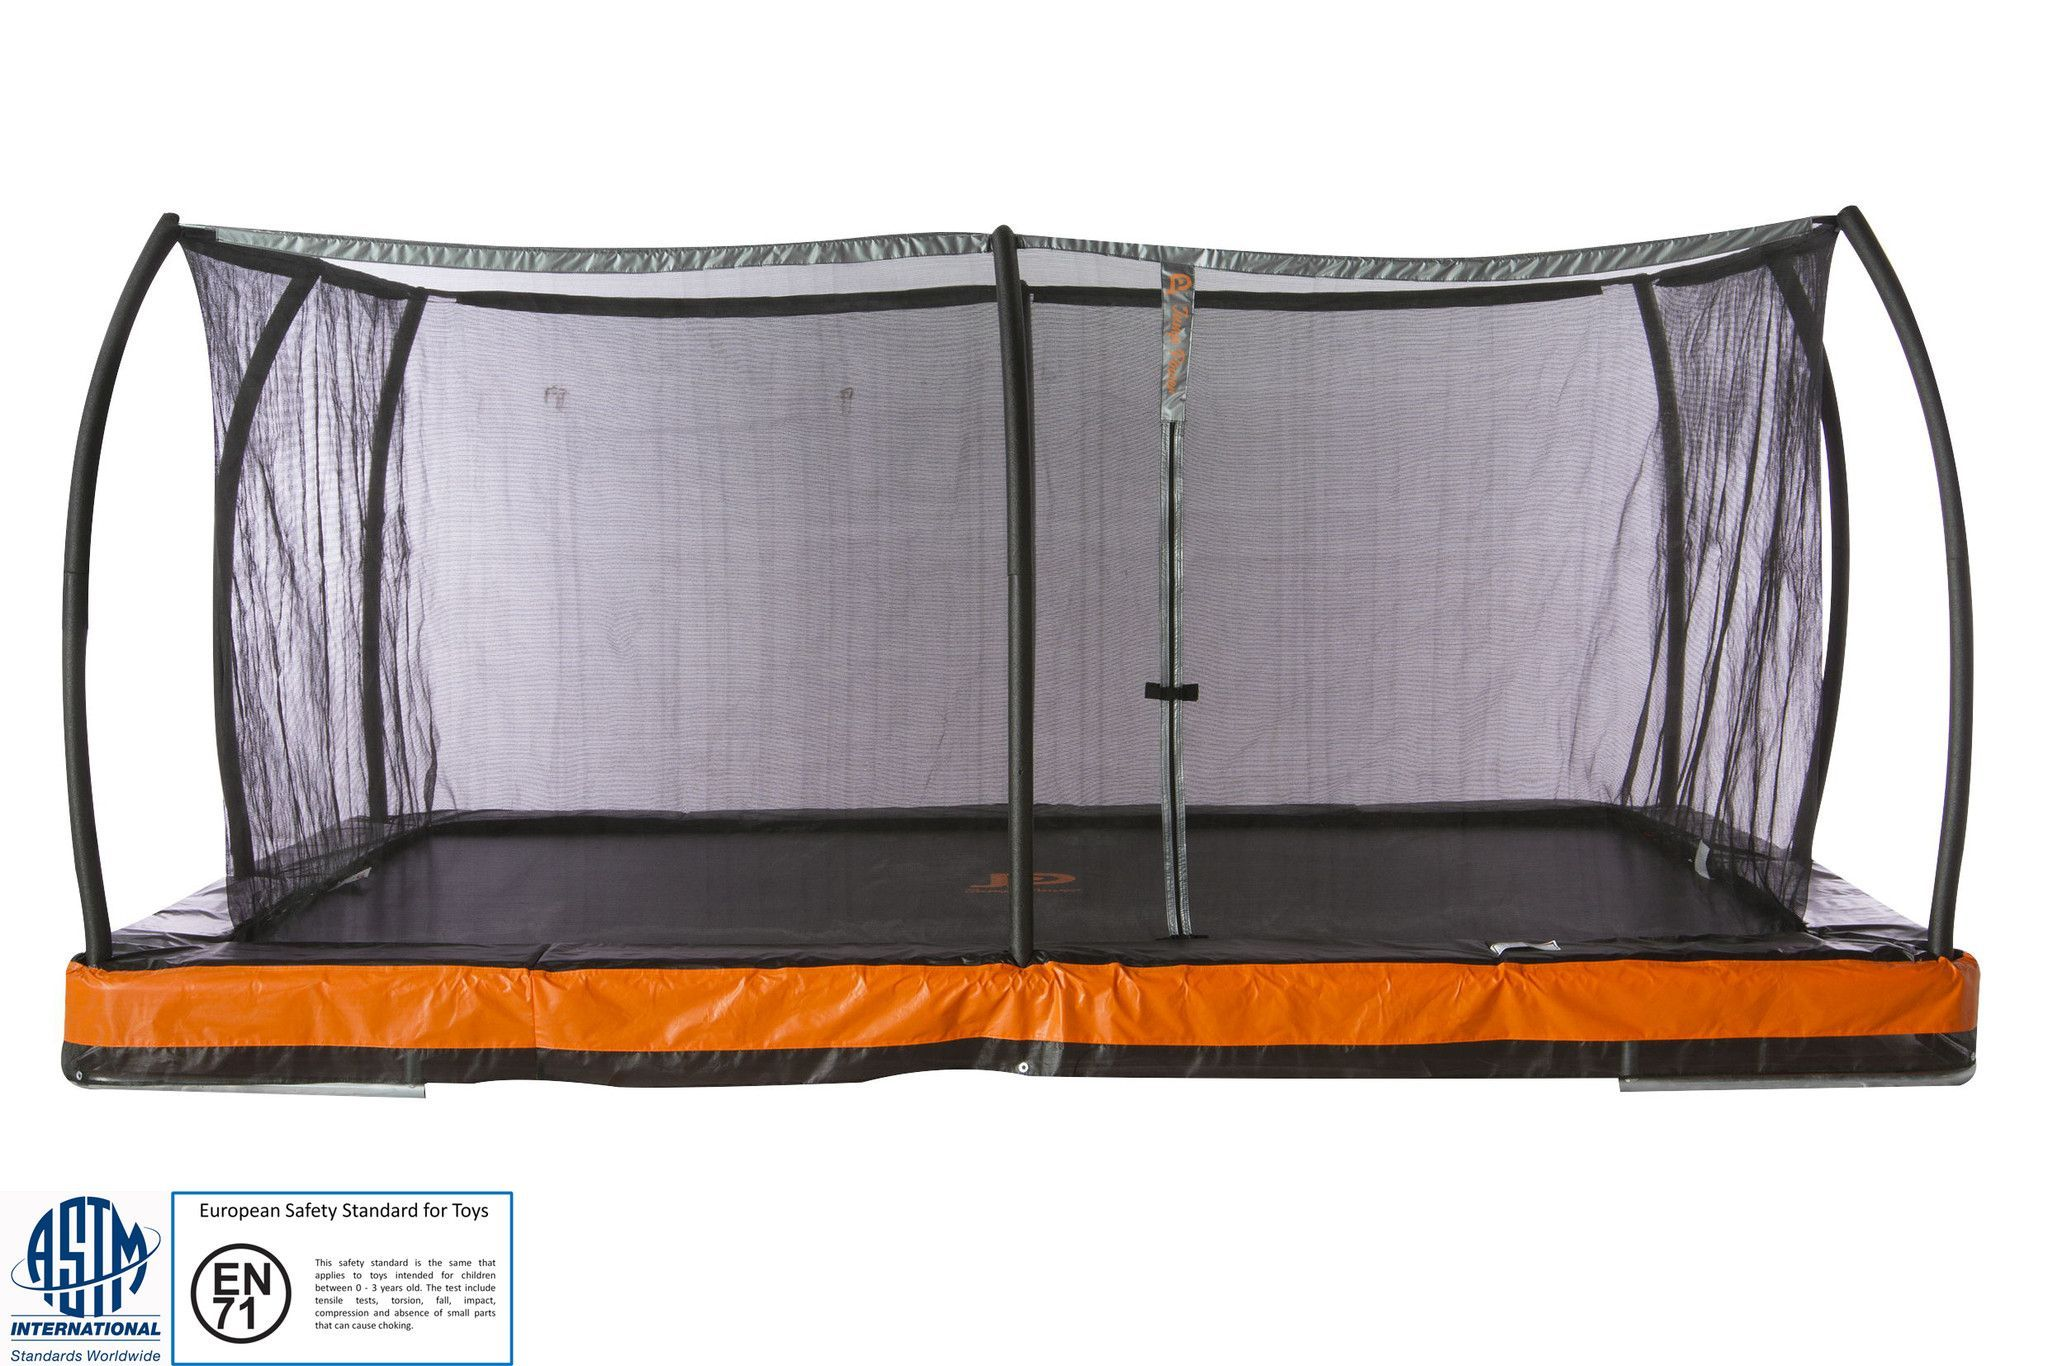 Pool Shapes Features Design Options Rectangular Trampoline Trampoline Safety Net Trampoline Safety